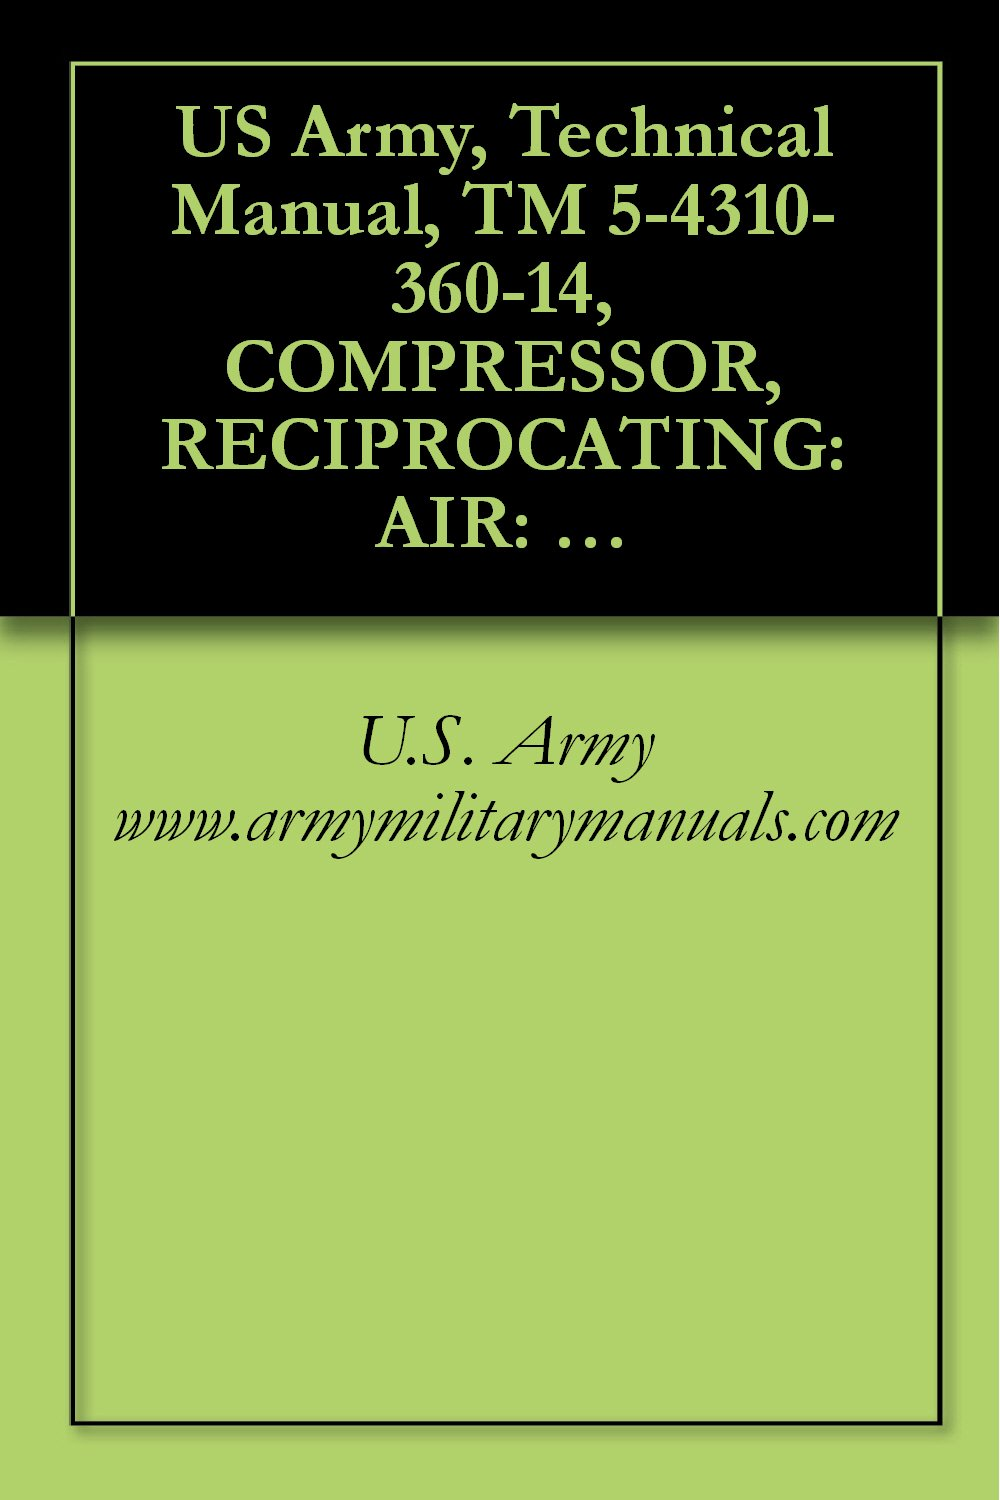 US Army, Technical Manual, TM 5-4310-360-14, COMPRESSOR, RECIPROCATING: AIR: HAND TRU MOUNTED, GASOLINE ENGINE DRIVEN, 5 CFM, 175 PSI, (C&H DISTRIBUTO ... military manauals, special forces